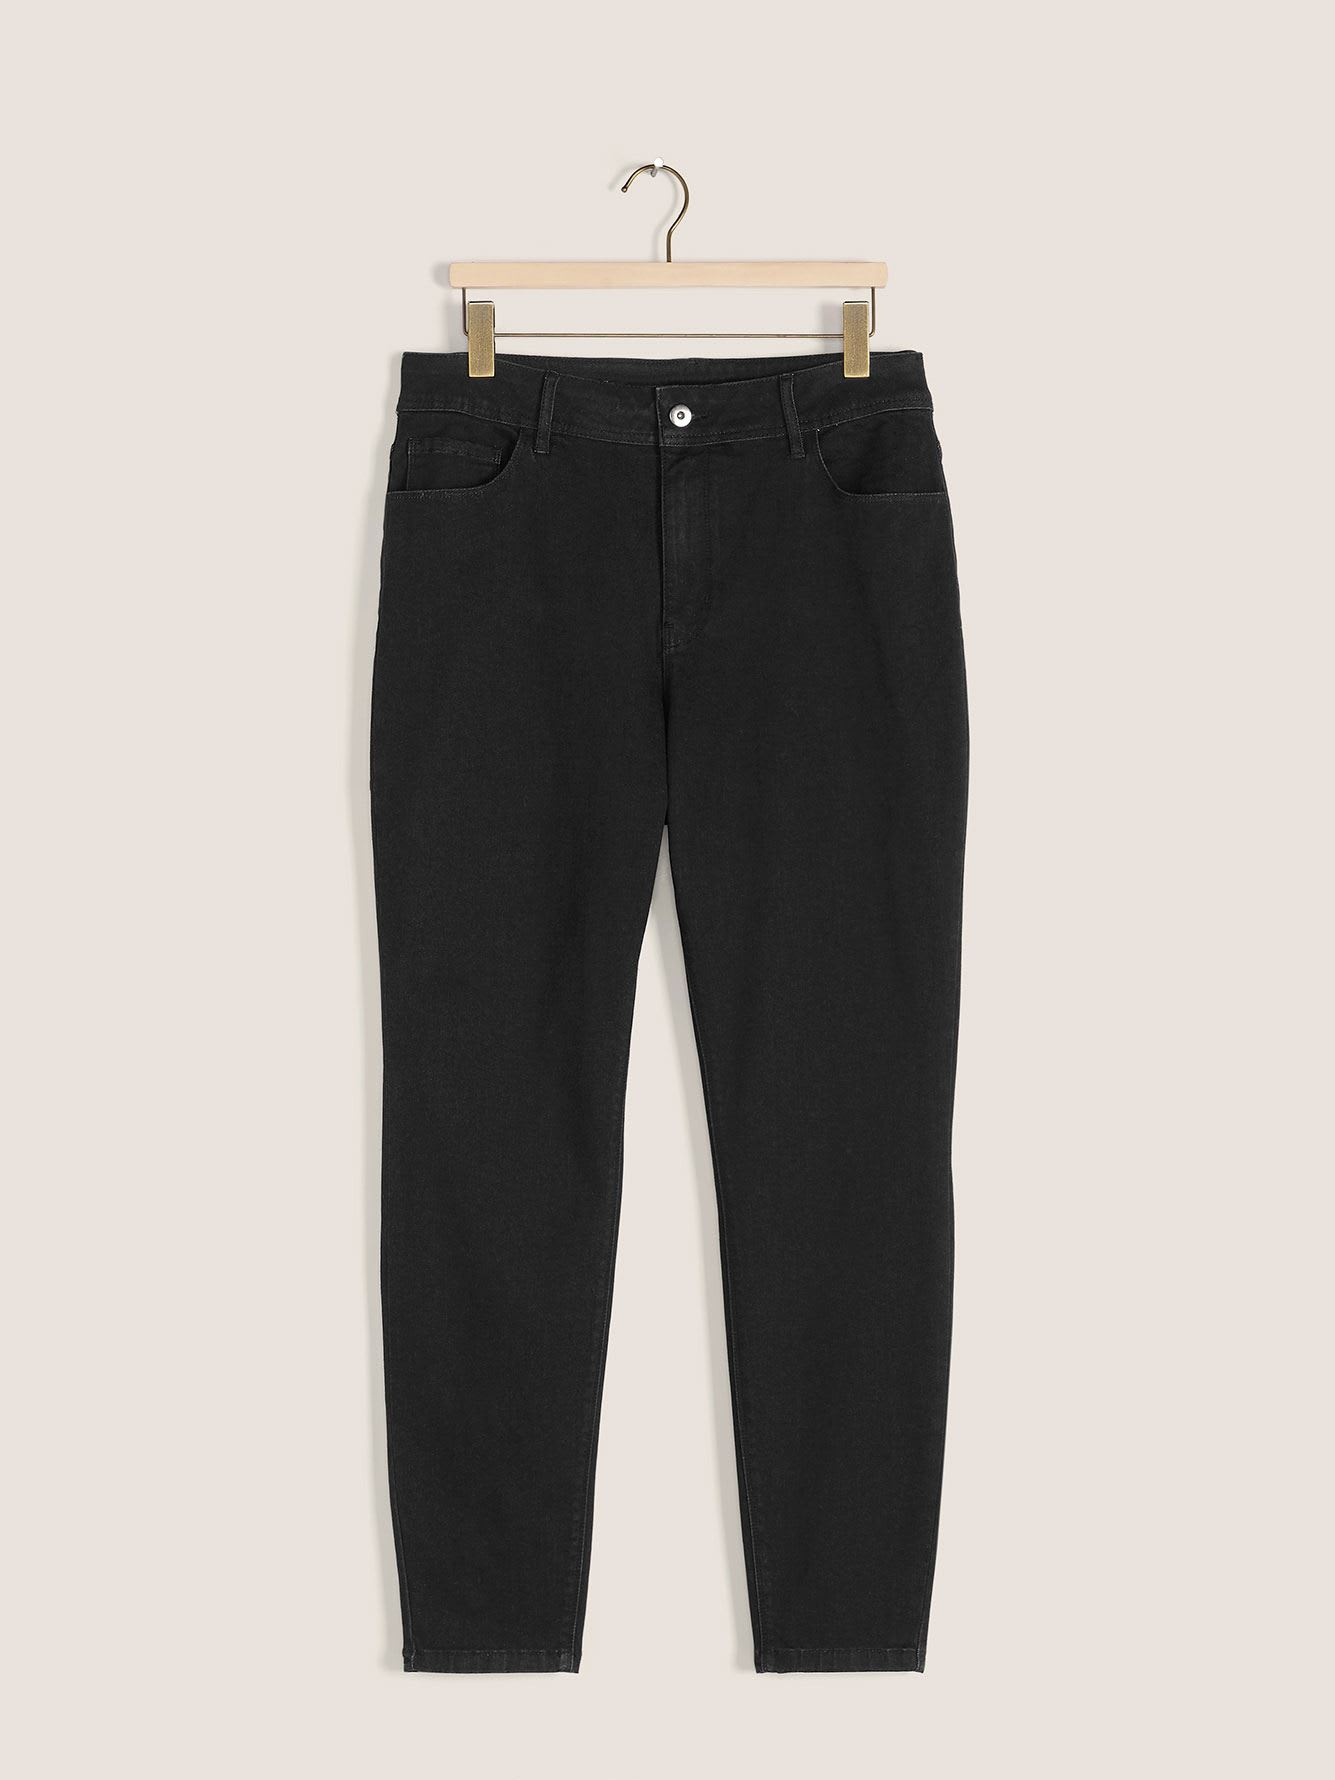 Ultra-Stretchy Black Jegging - d/C JEANS